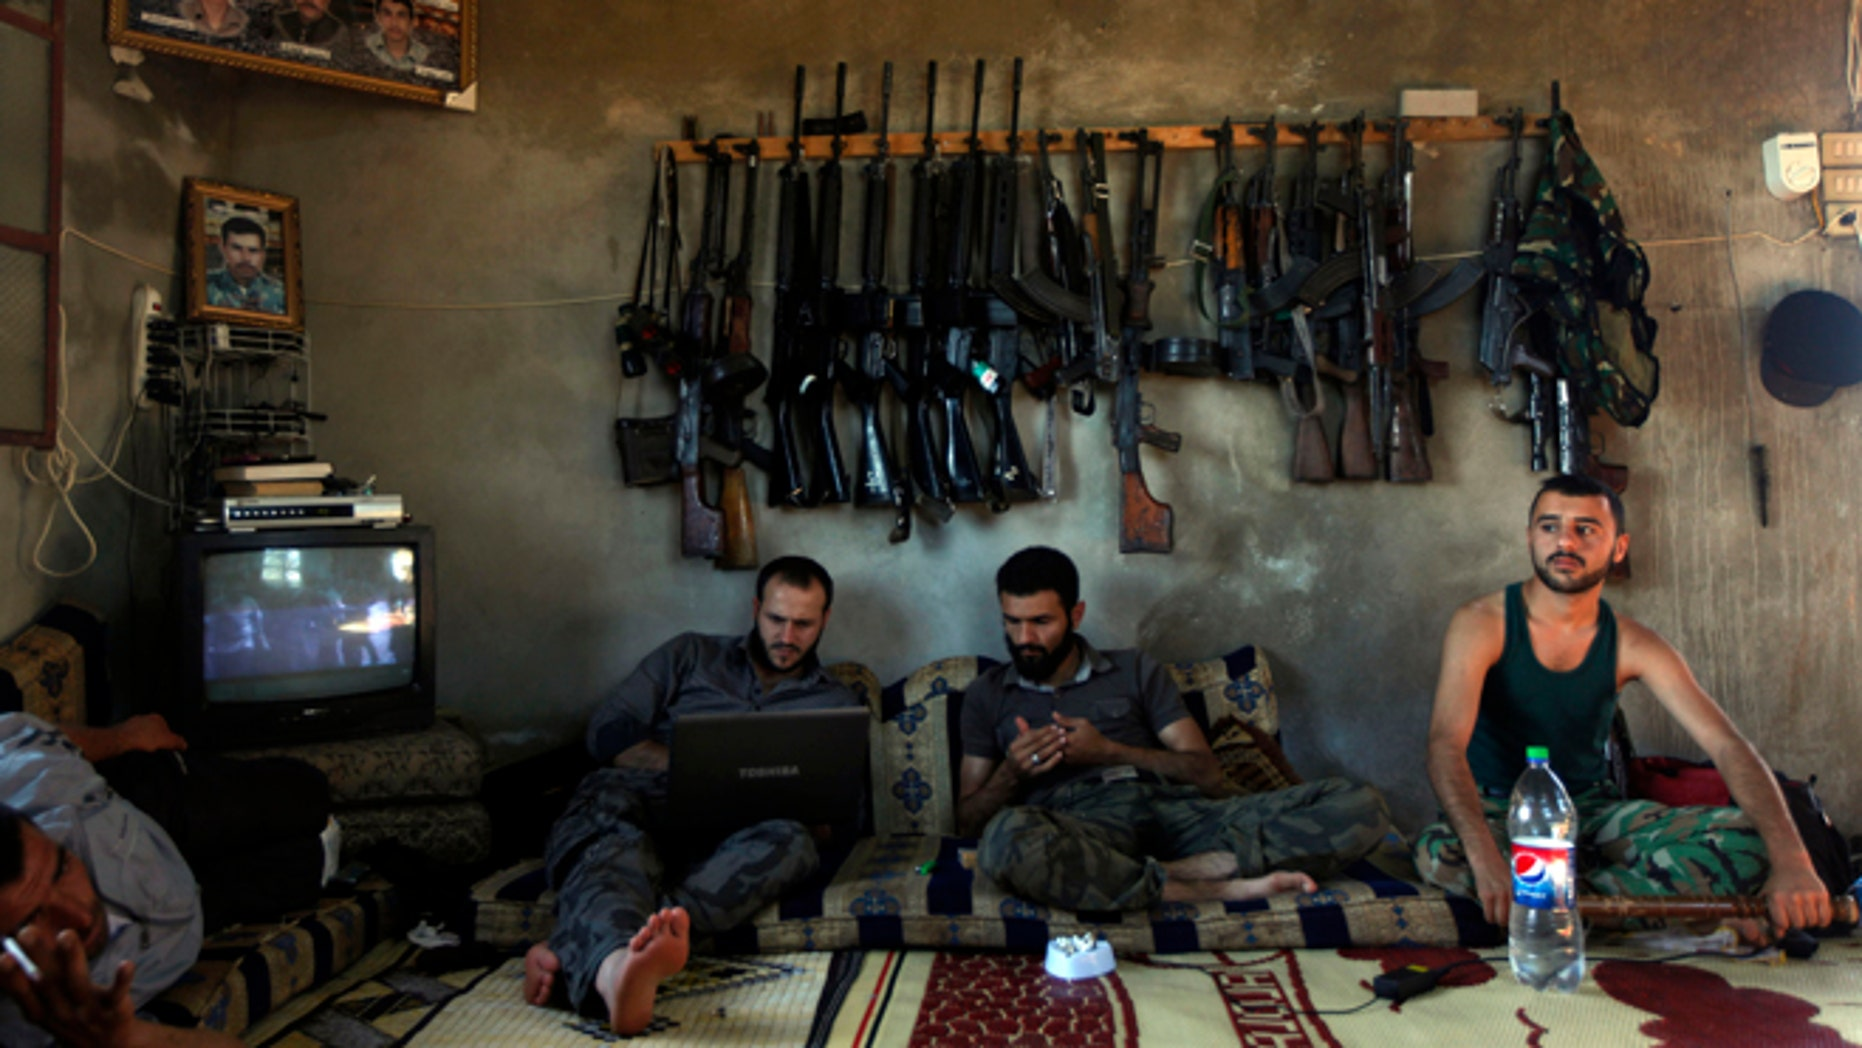 June 12, 2012: Free Syrian Army fighters sit in a house on the outskirts of Aleppo, Syria.